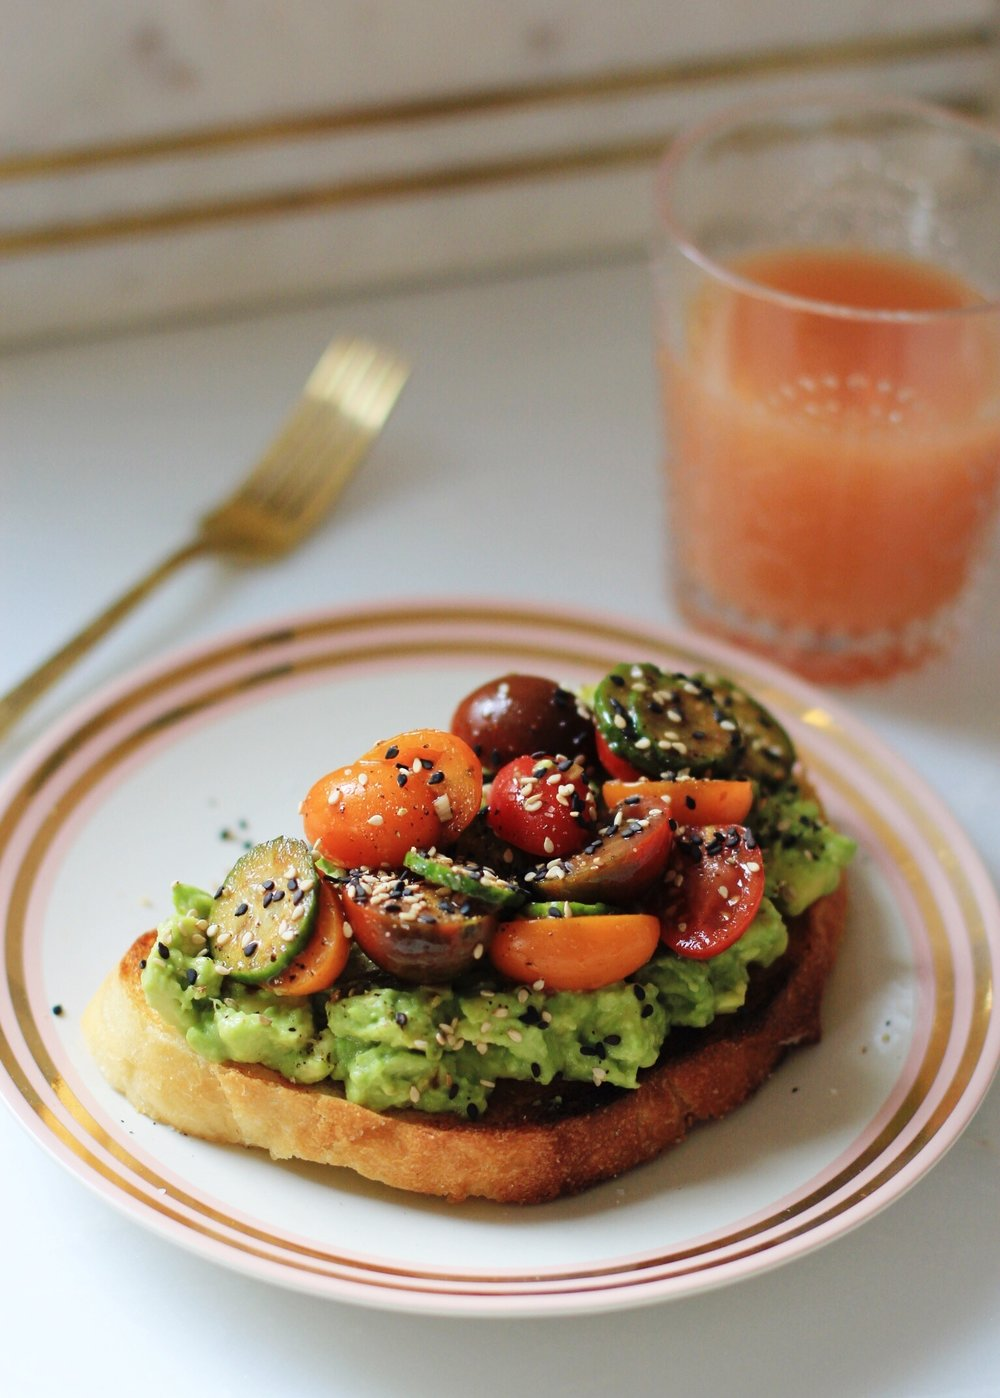 Avocado toast with marinated tomatoes and cucumbers